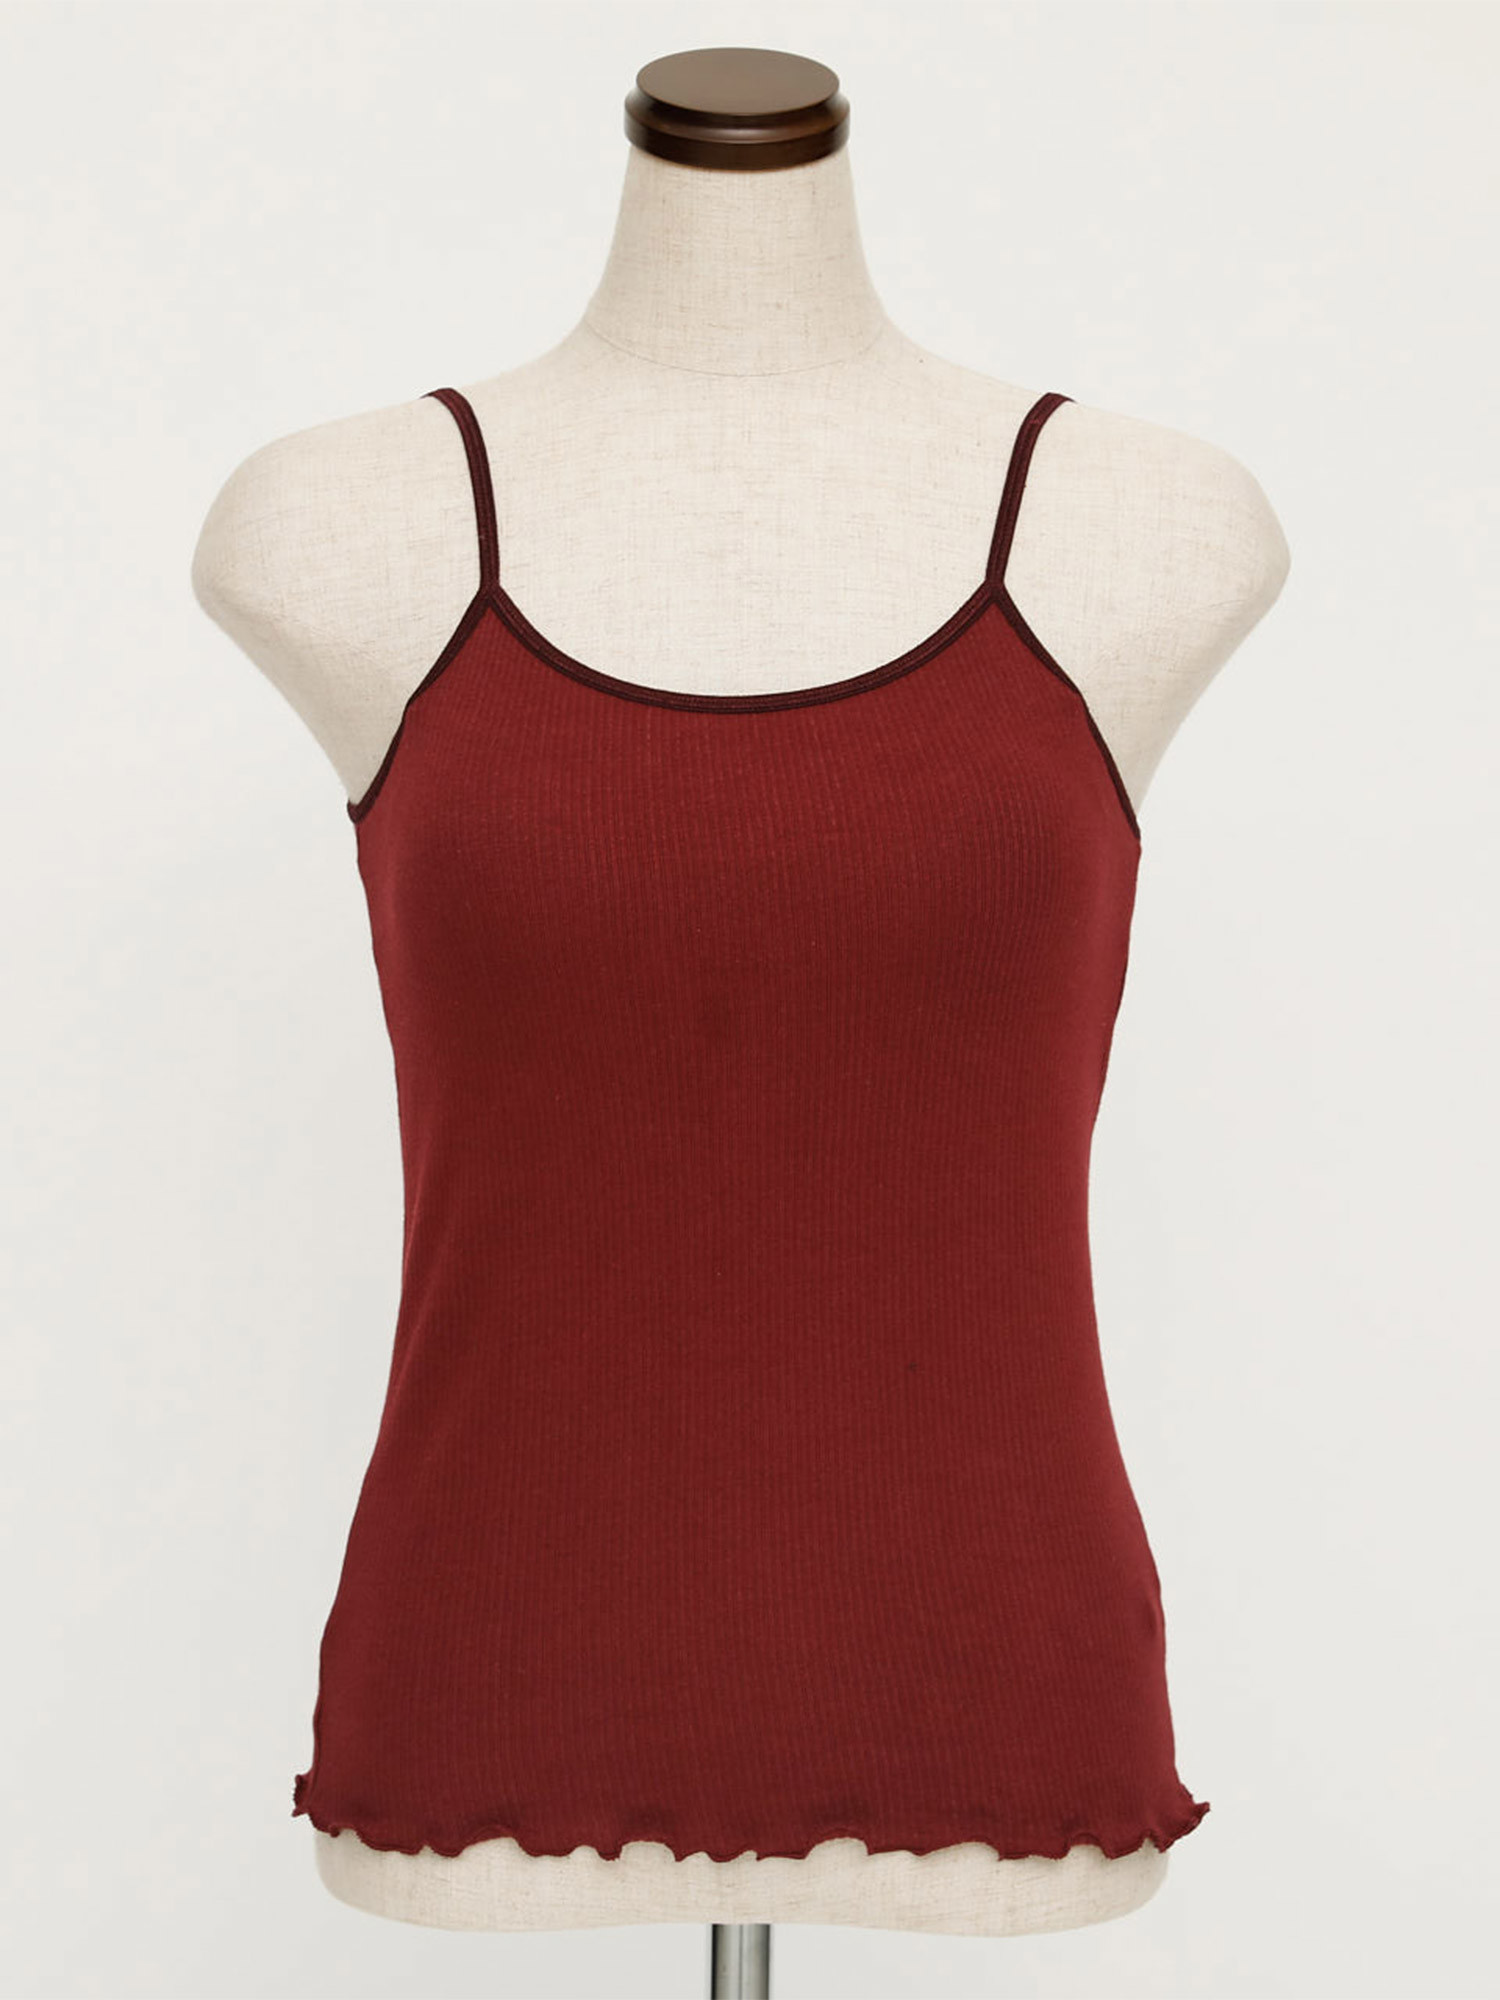 CUP IN BACK OPEN RIB CAMI